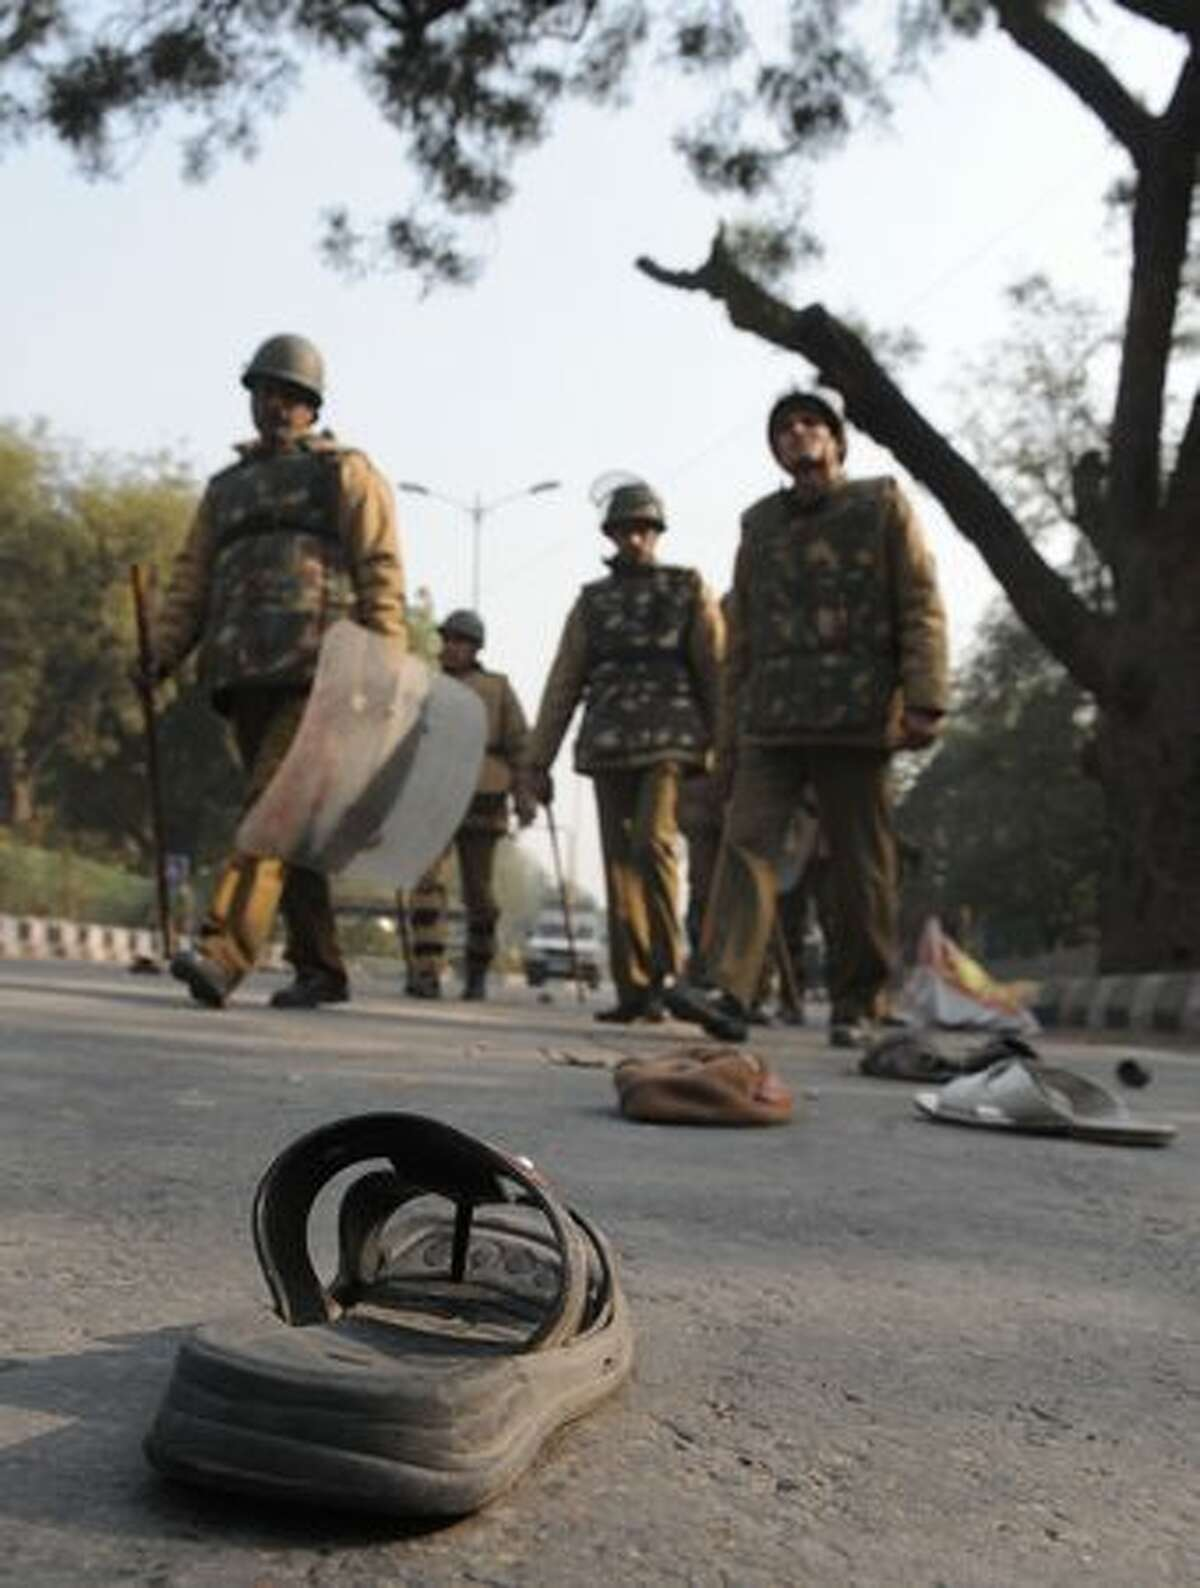 Footwear lie scattered on the road after a baton charge by Delhi Police during a protest against the demolition of an alleged illegally-built mosque in New Delhi on Wednesday. The